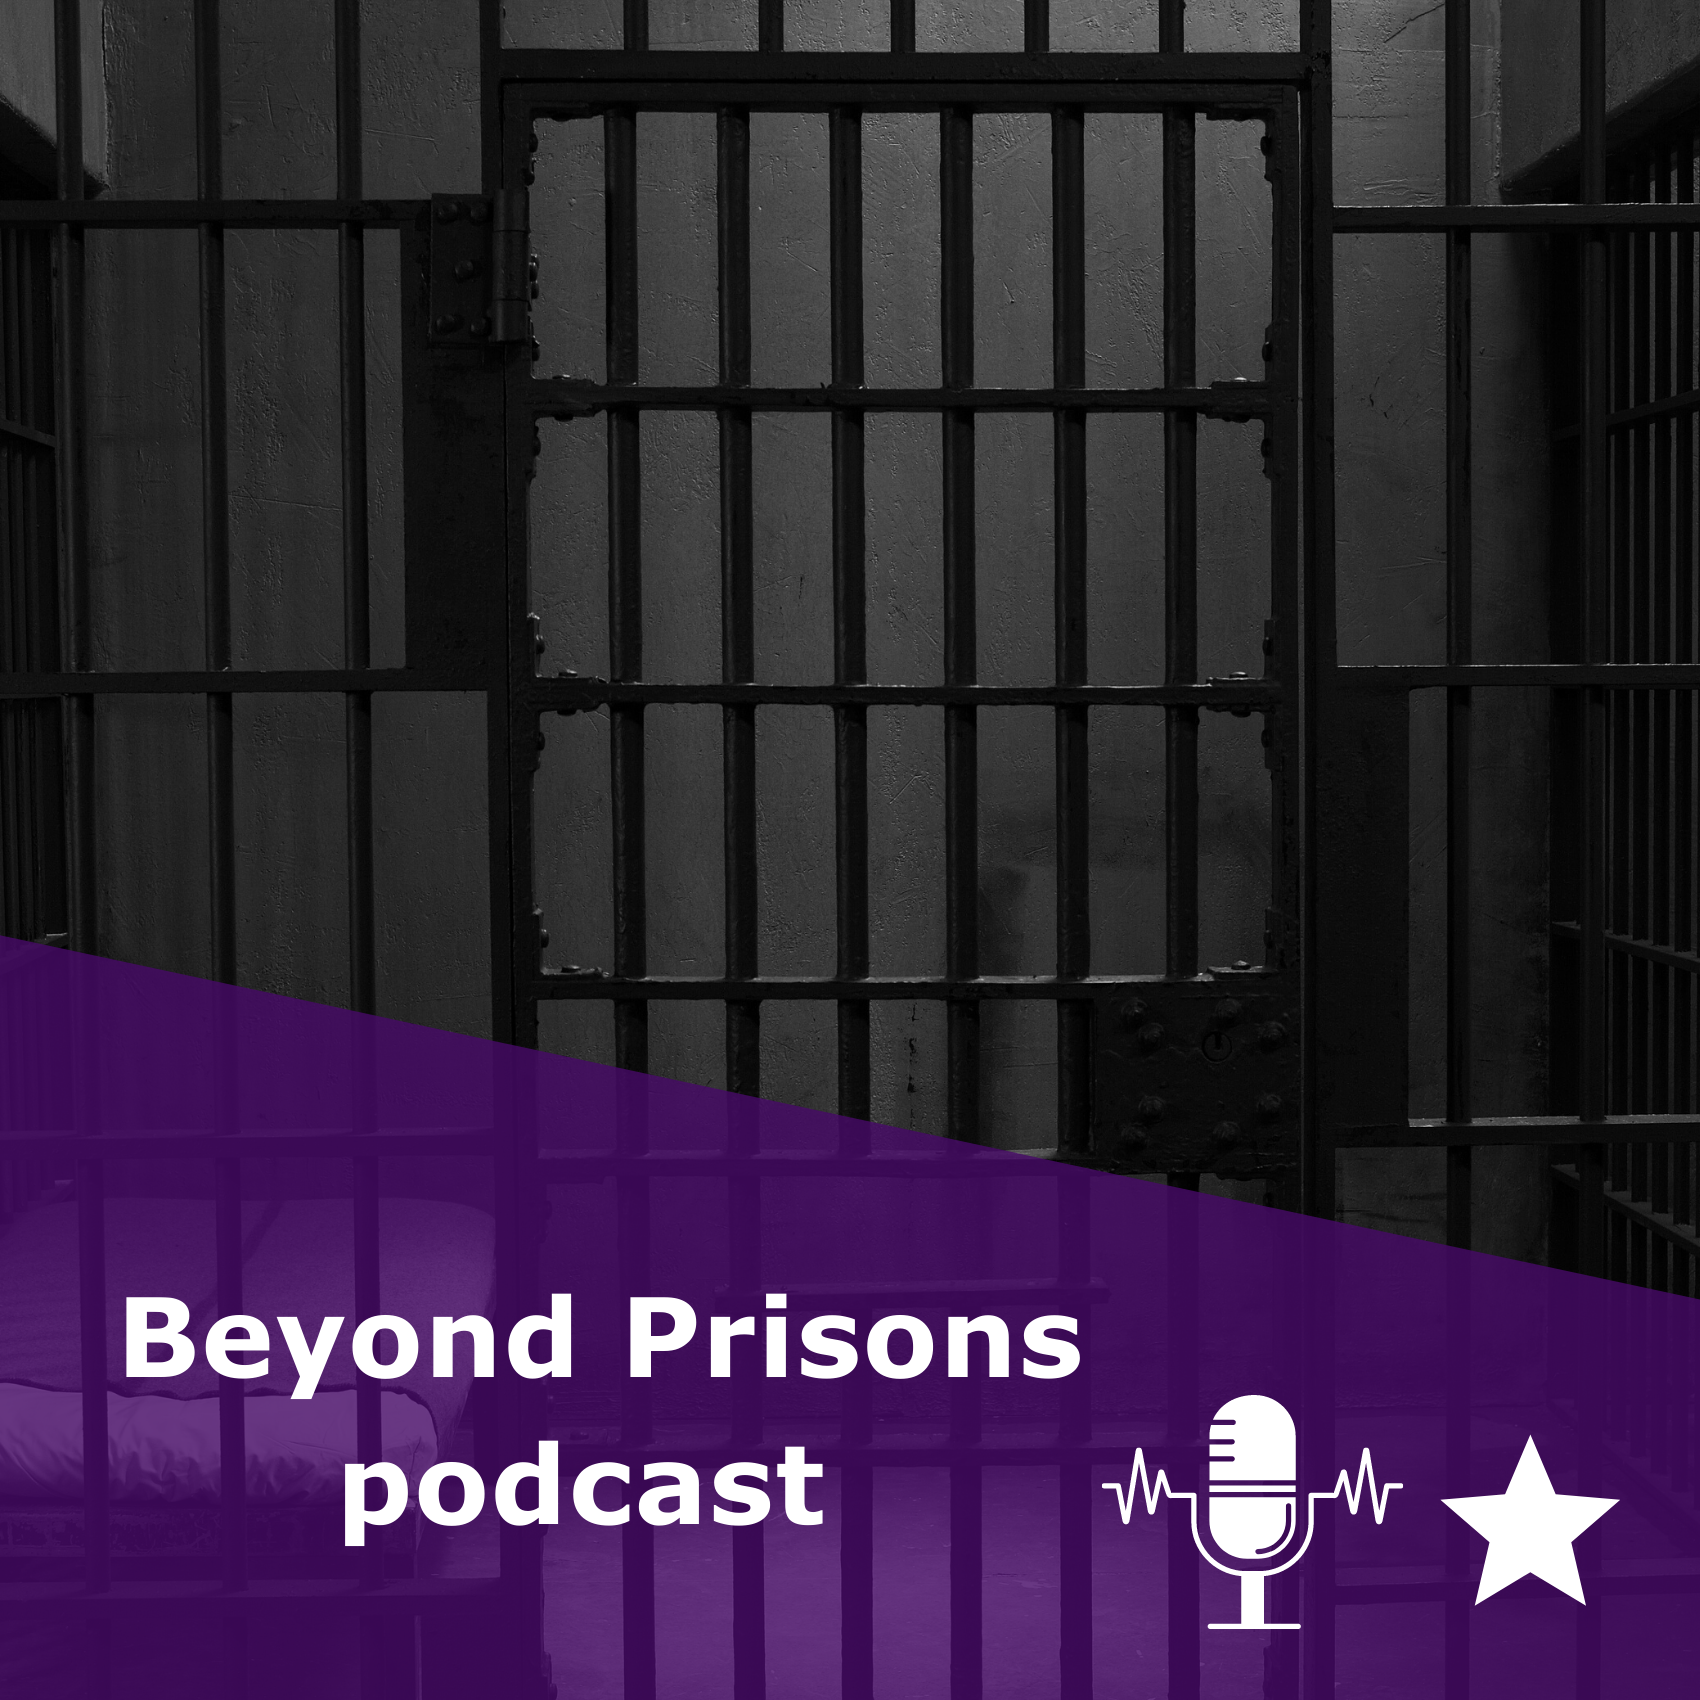 Beyond Prisons podcast, rated 1 star